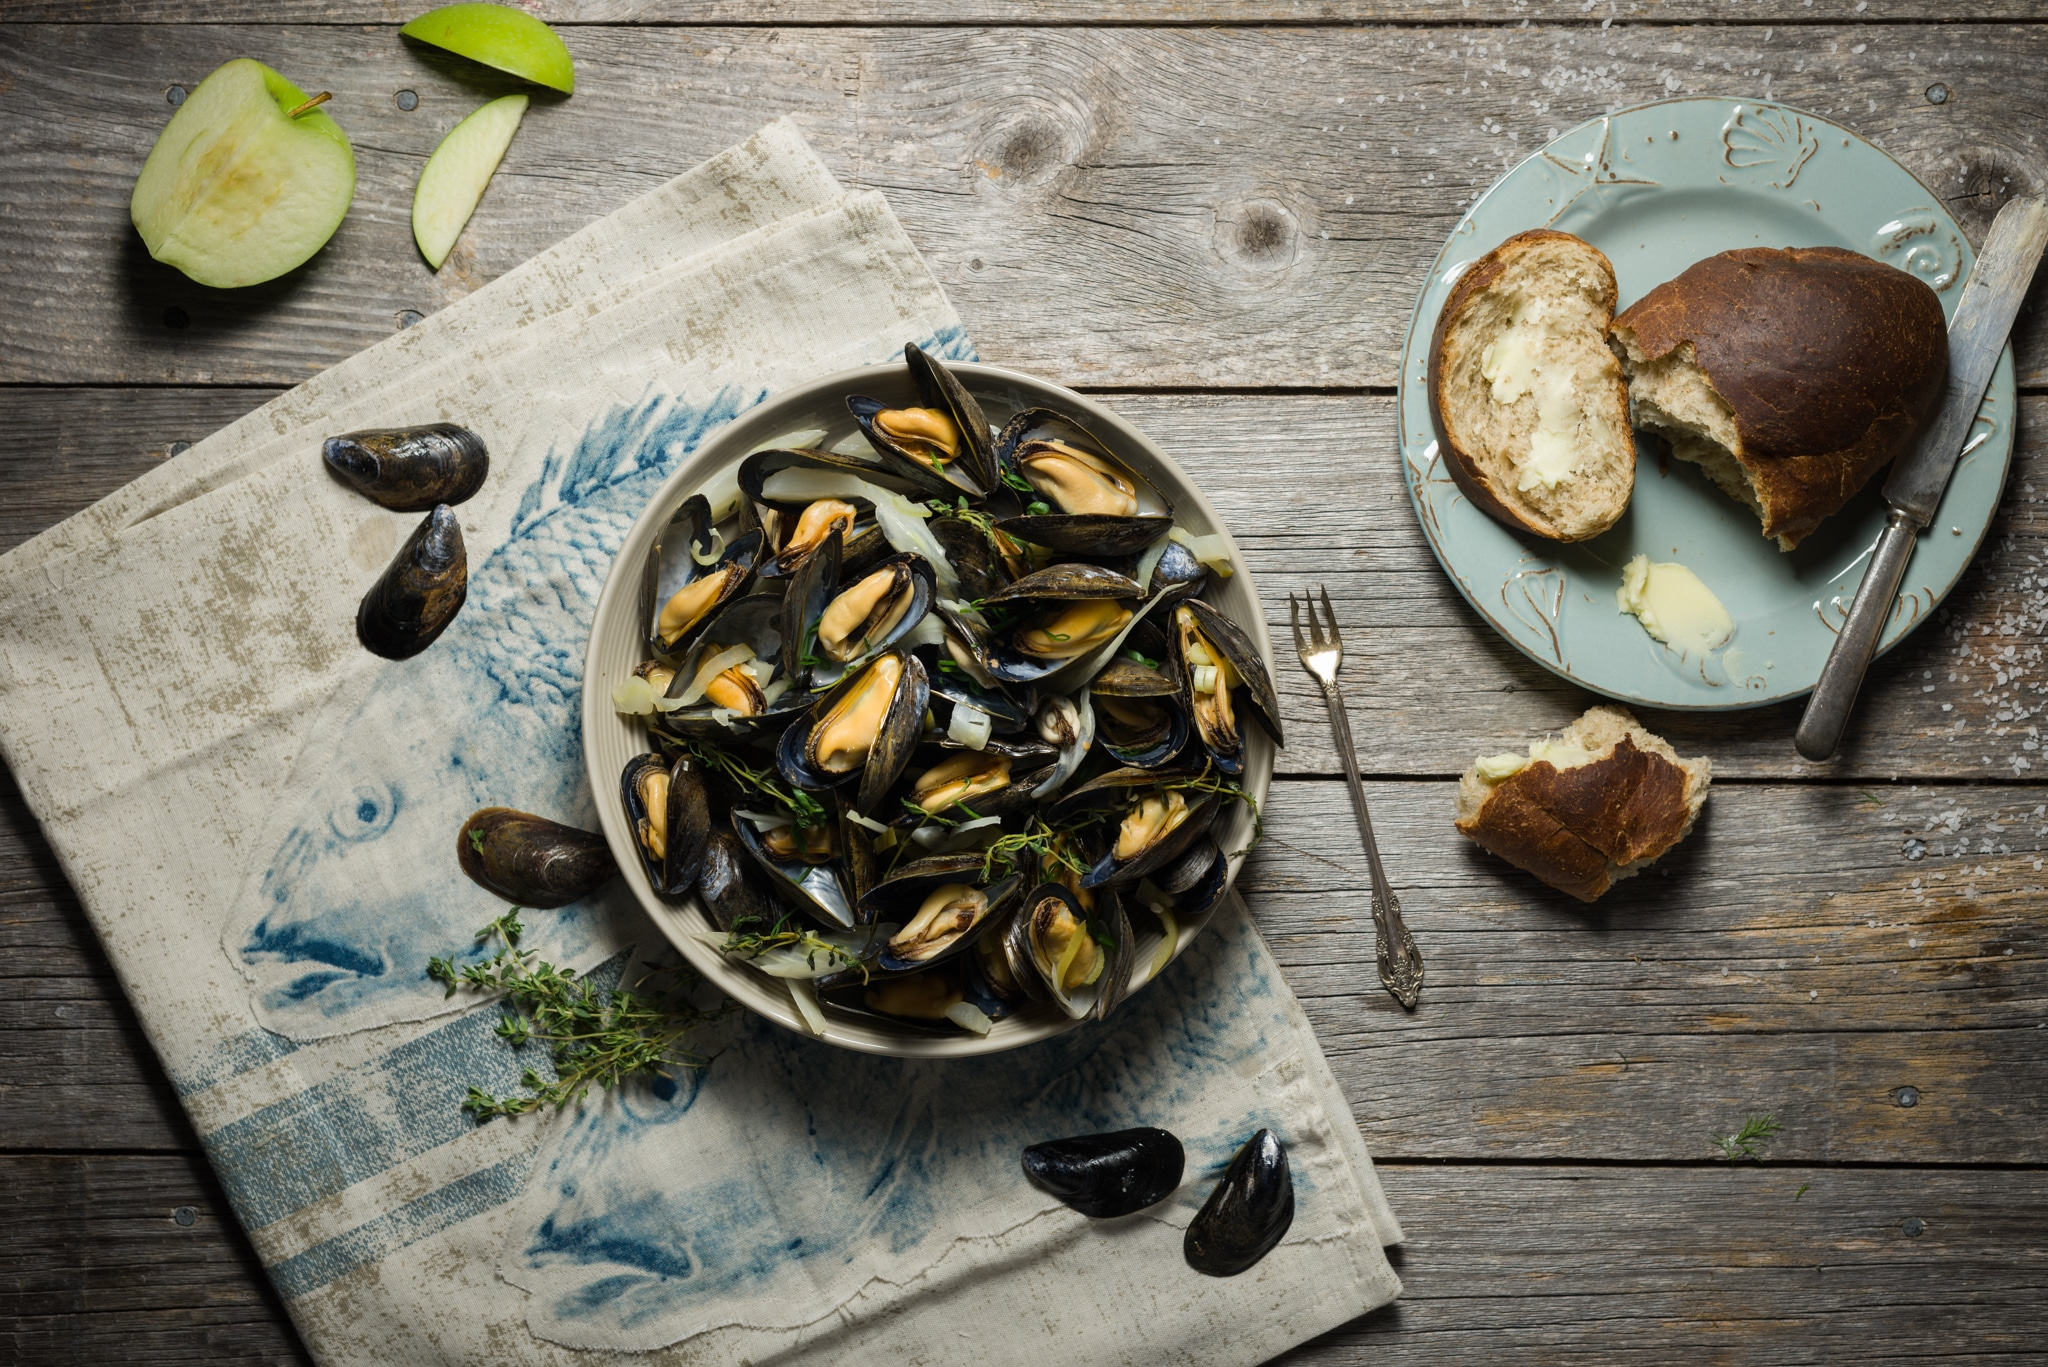 Best of Sea mussels